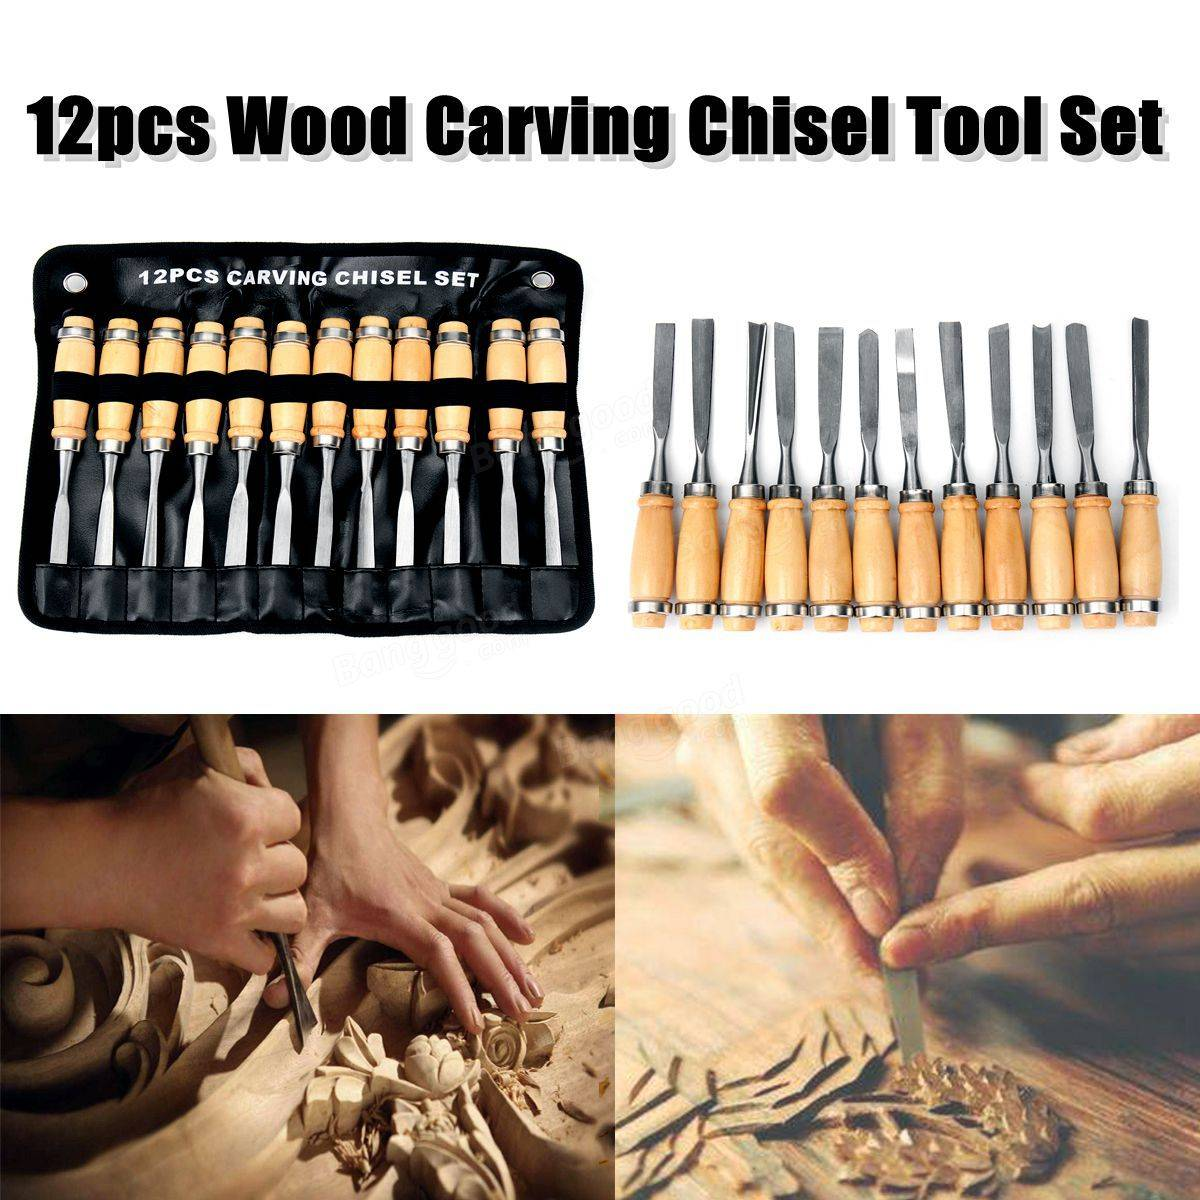 12pcs Wood Carving Hand Chisel Tool Set Professional Woodworking Gouges Steel